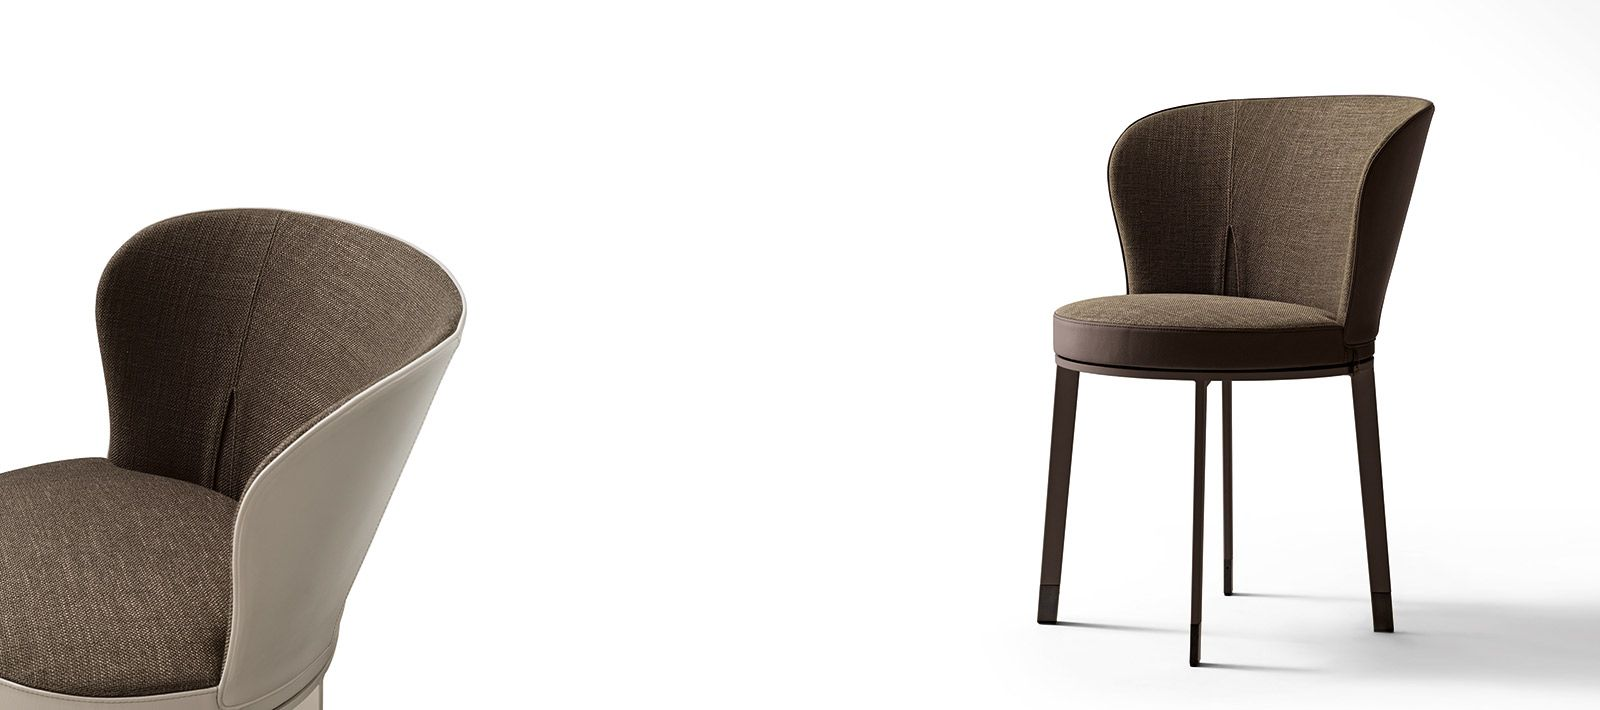 Giorgetti Furniture Dining Chairs Pinterest Dining Chairs  # Muebles Giorgetti